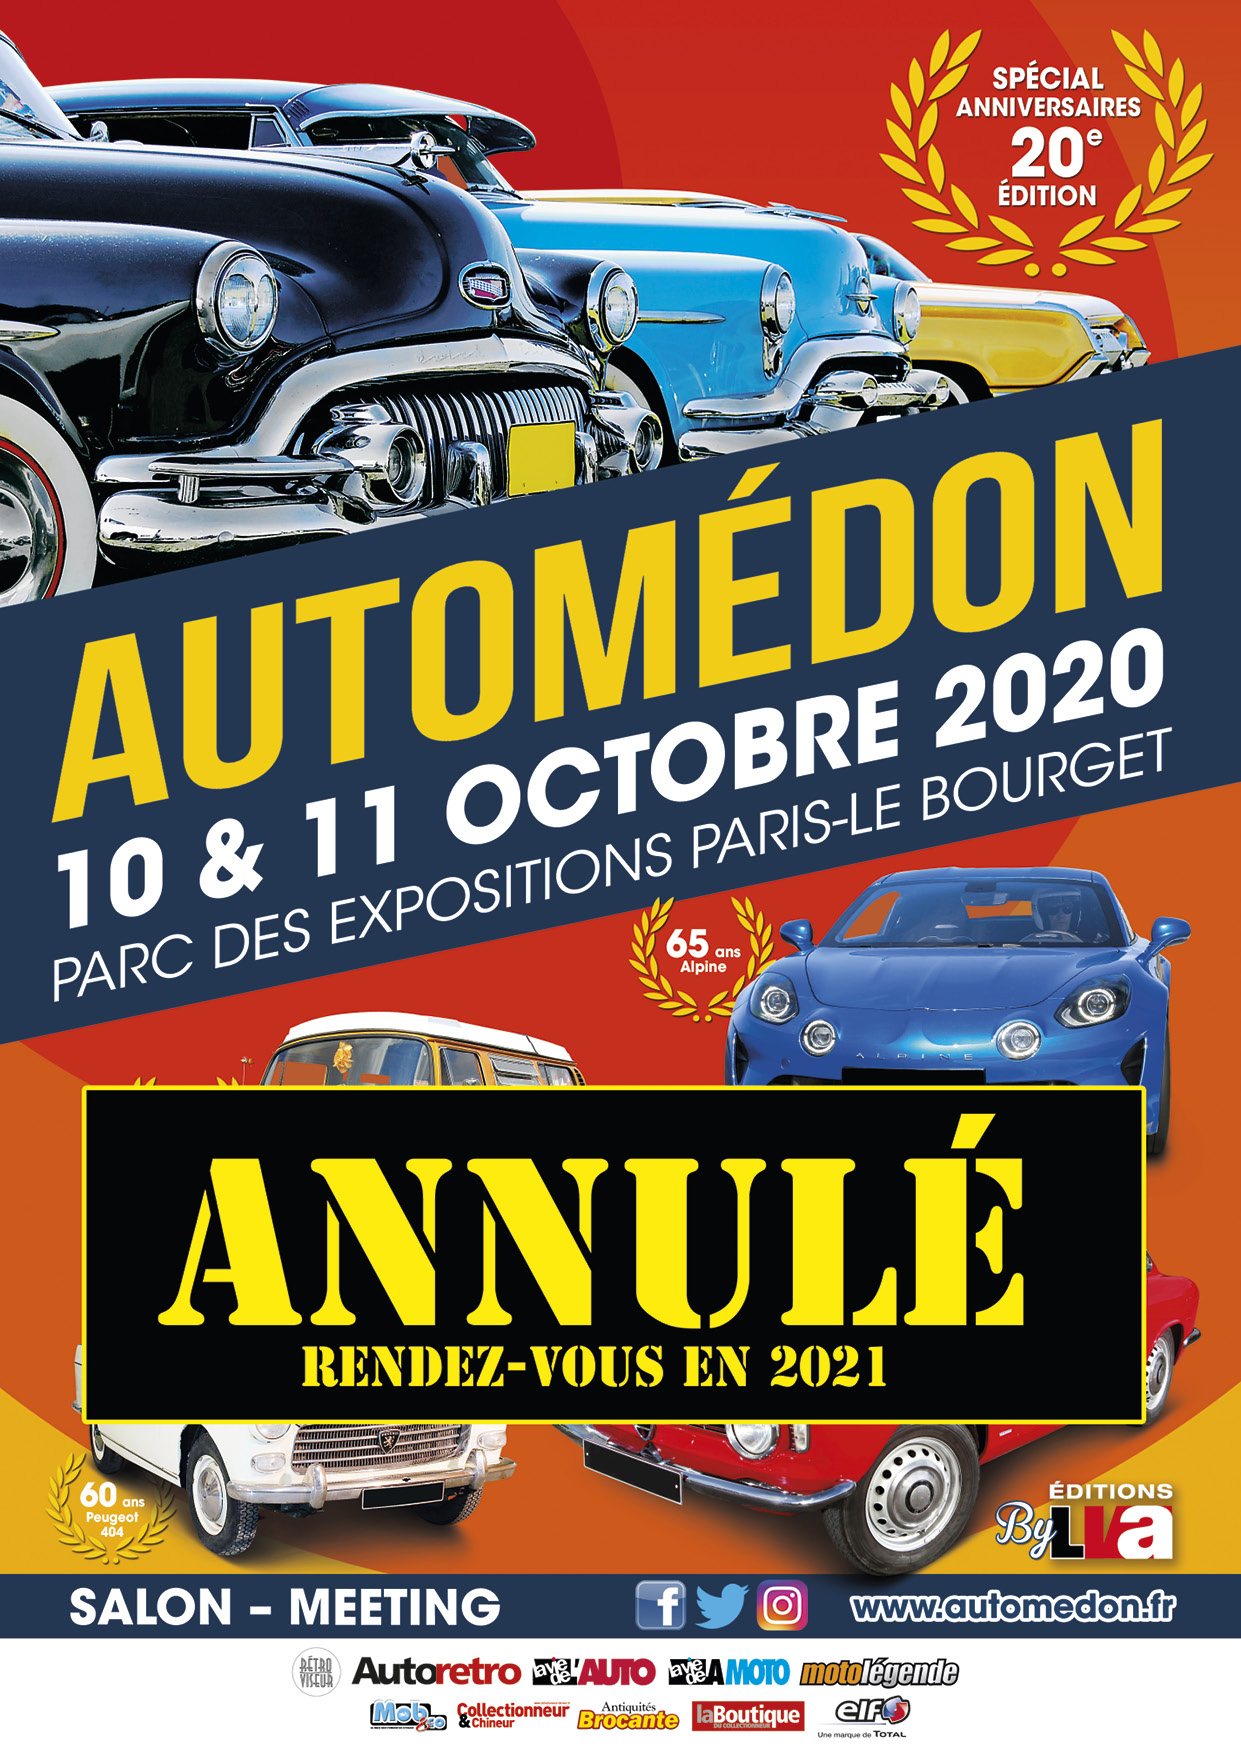 Annulation du salon Automédon 2020